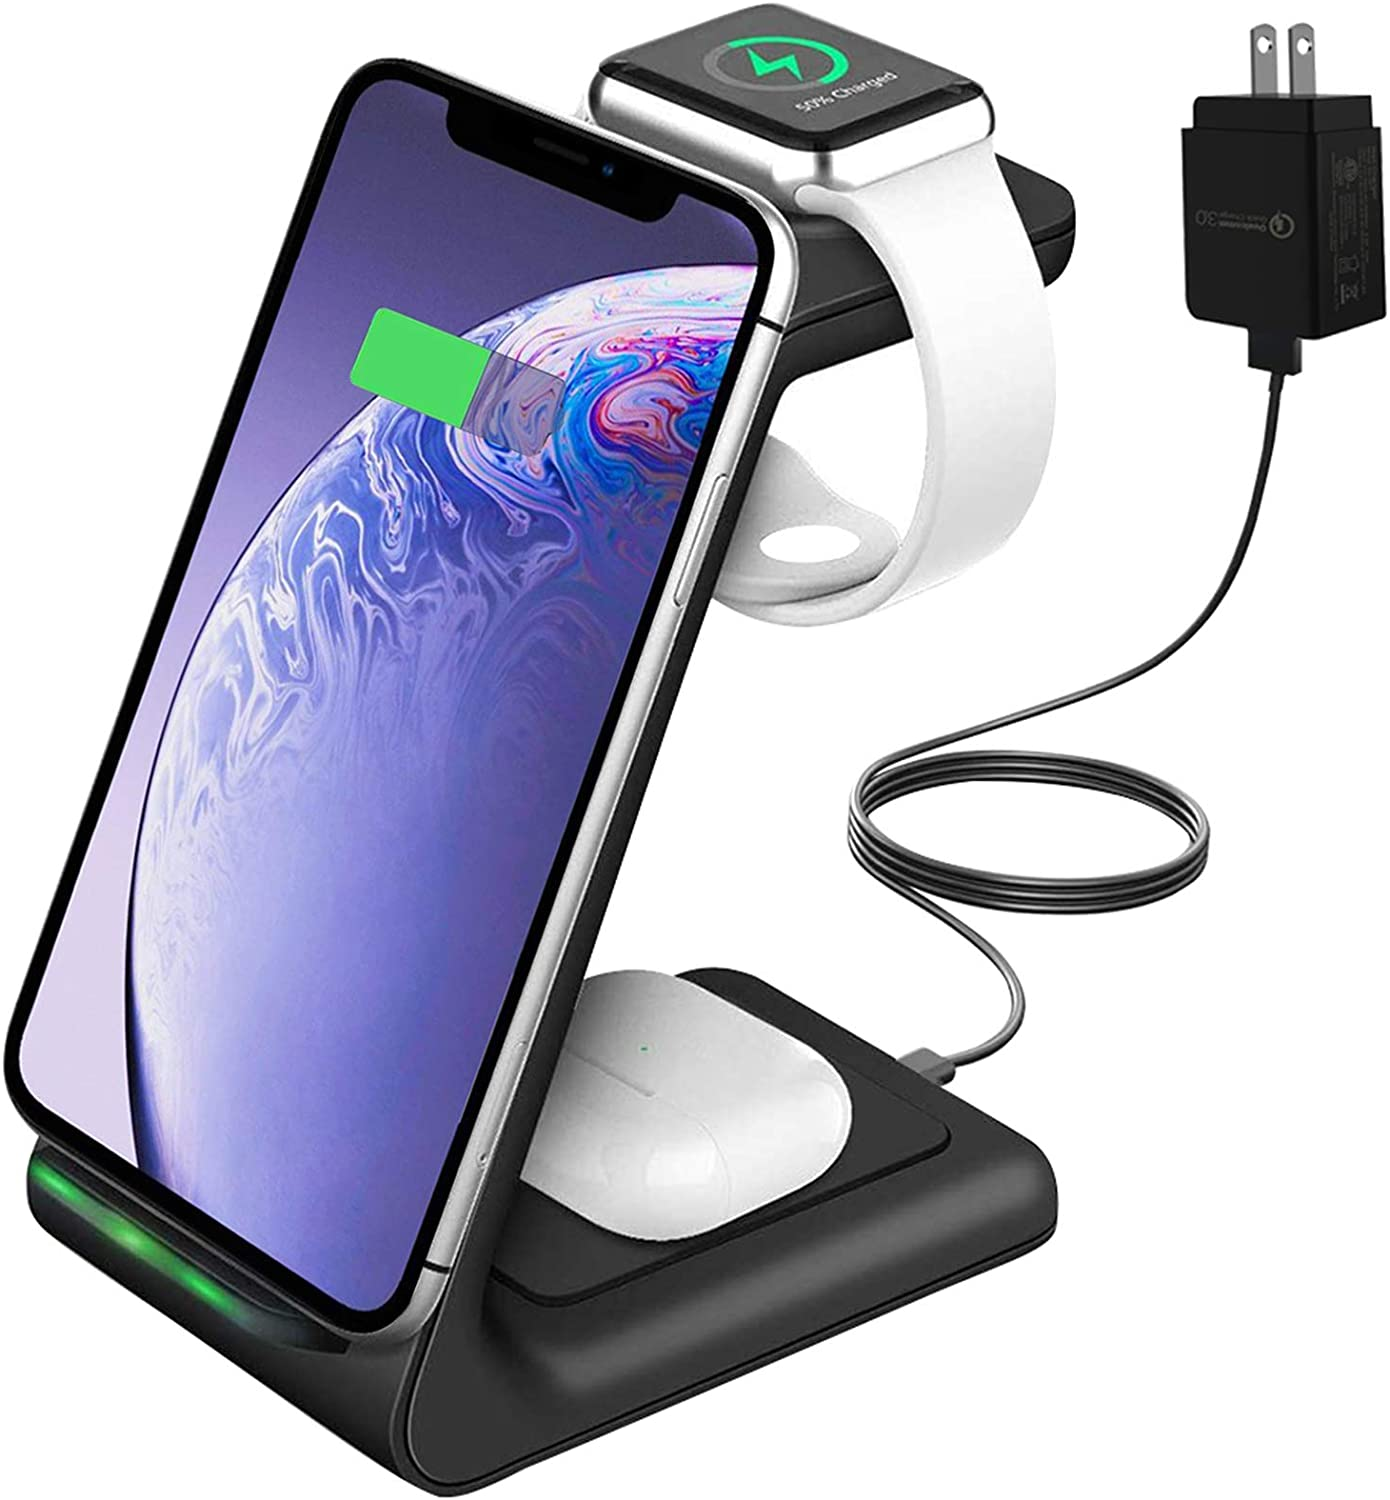 YOCUNKER Wireless Charger, 3 in 1 Wireless Charging Station for Apple Watch 5/4/3/2/1 & AirPods 2 / Pro Fast Qi Charger Dock for iPhone 11 / Xs/X Max/XR/X / 8Plus / Samsung (Included Adapter)